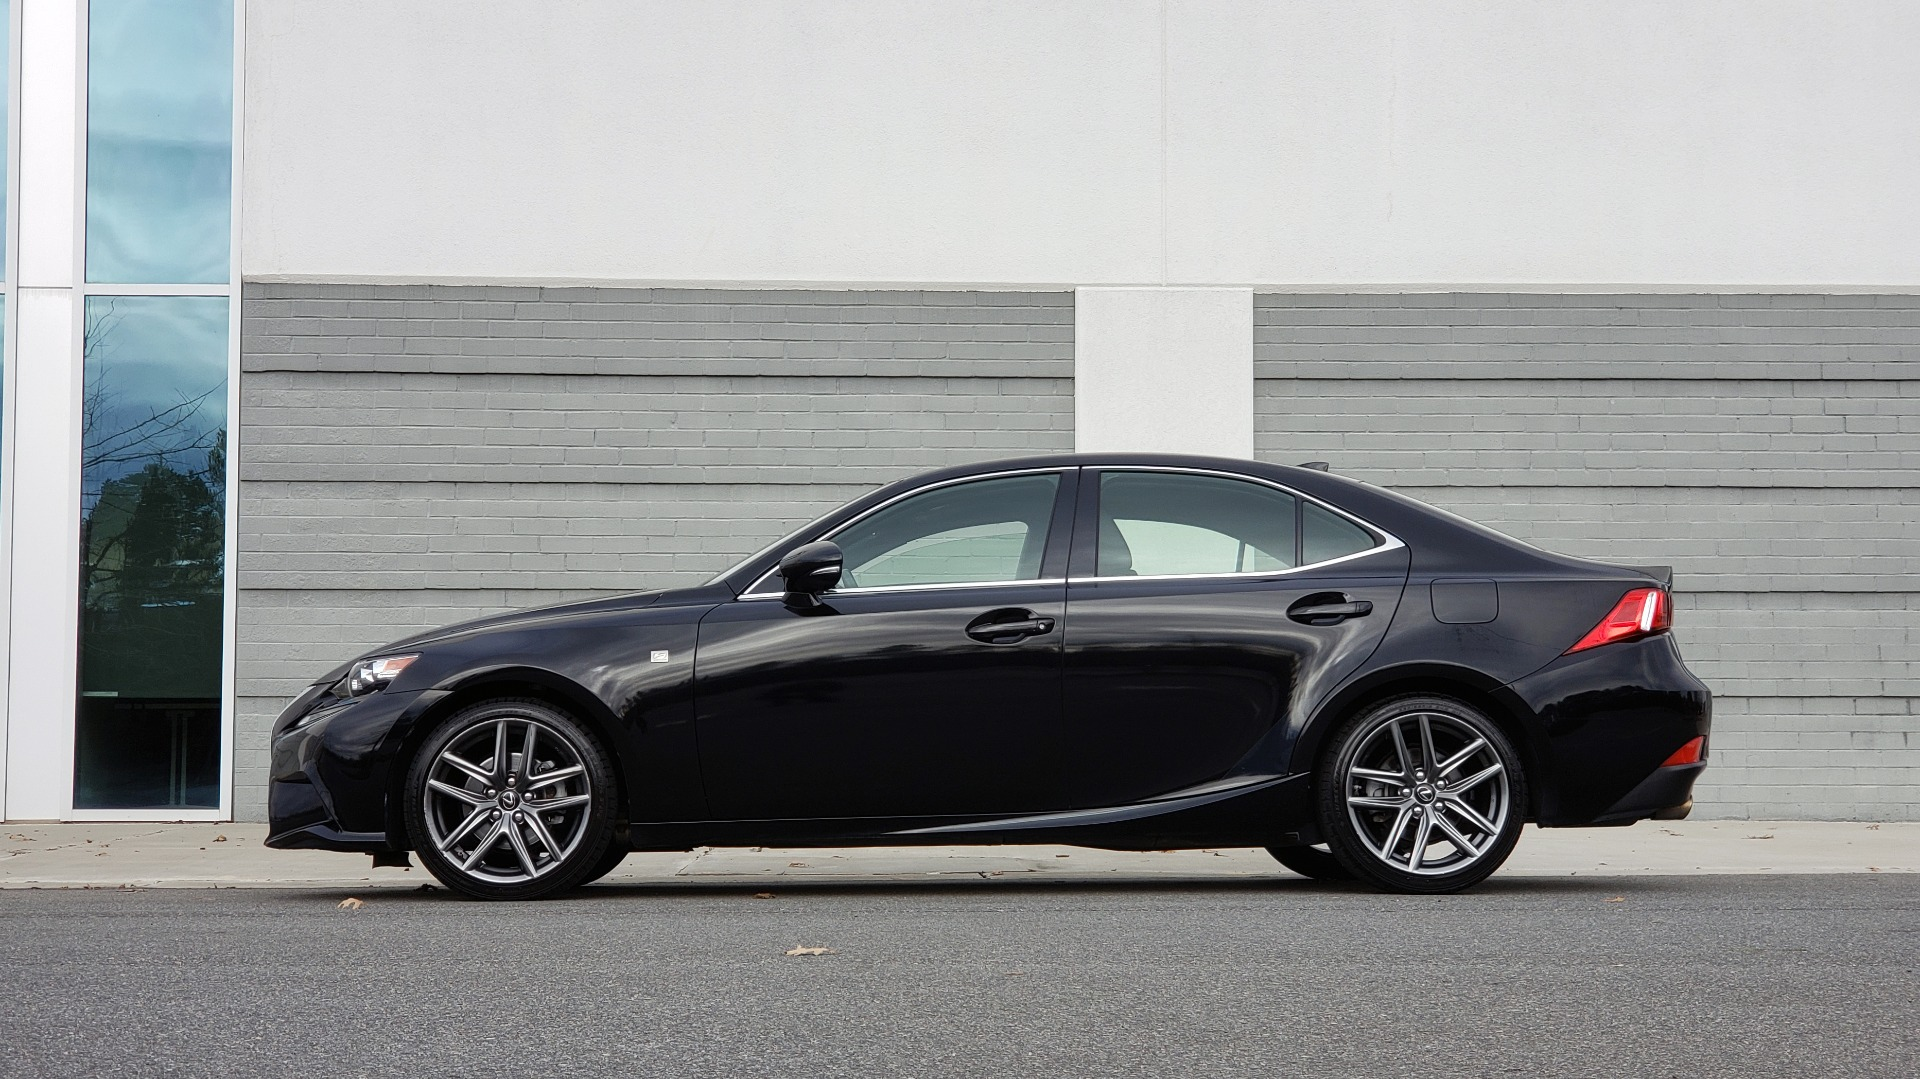 Used 2015 Lexus IS 250 F-SPORT / BLIND SPOT MON / SUNROOF / REARVIEW for sale Sold at Formula Imports in Charlotte NC 28227 2